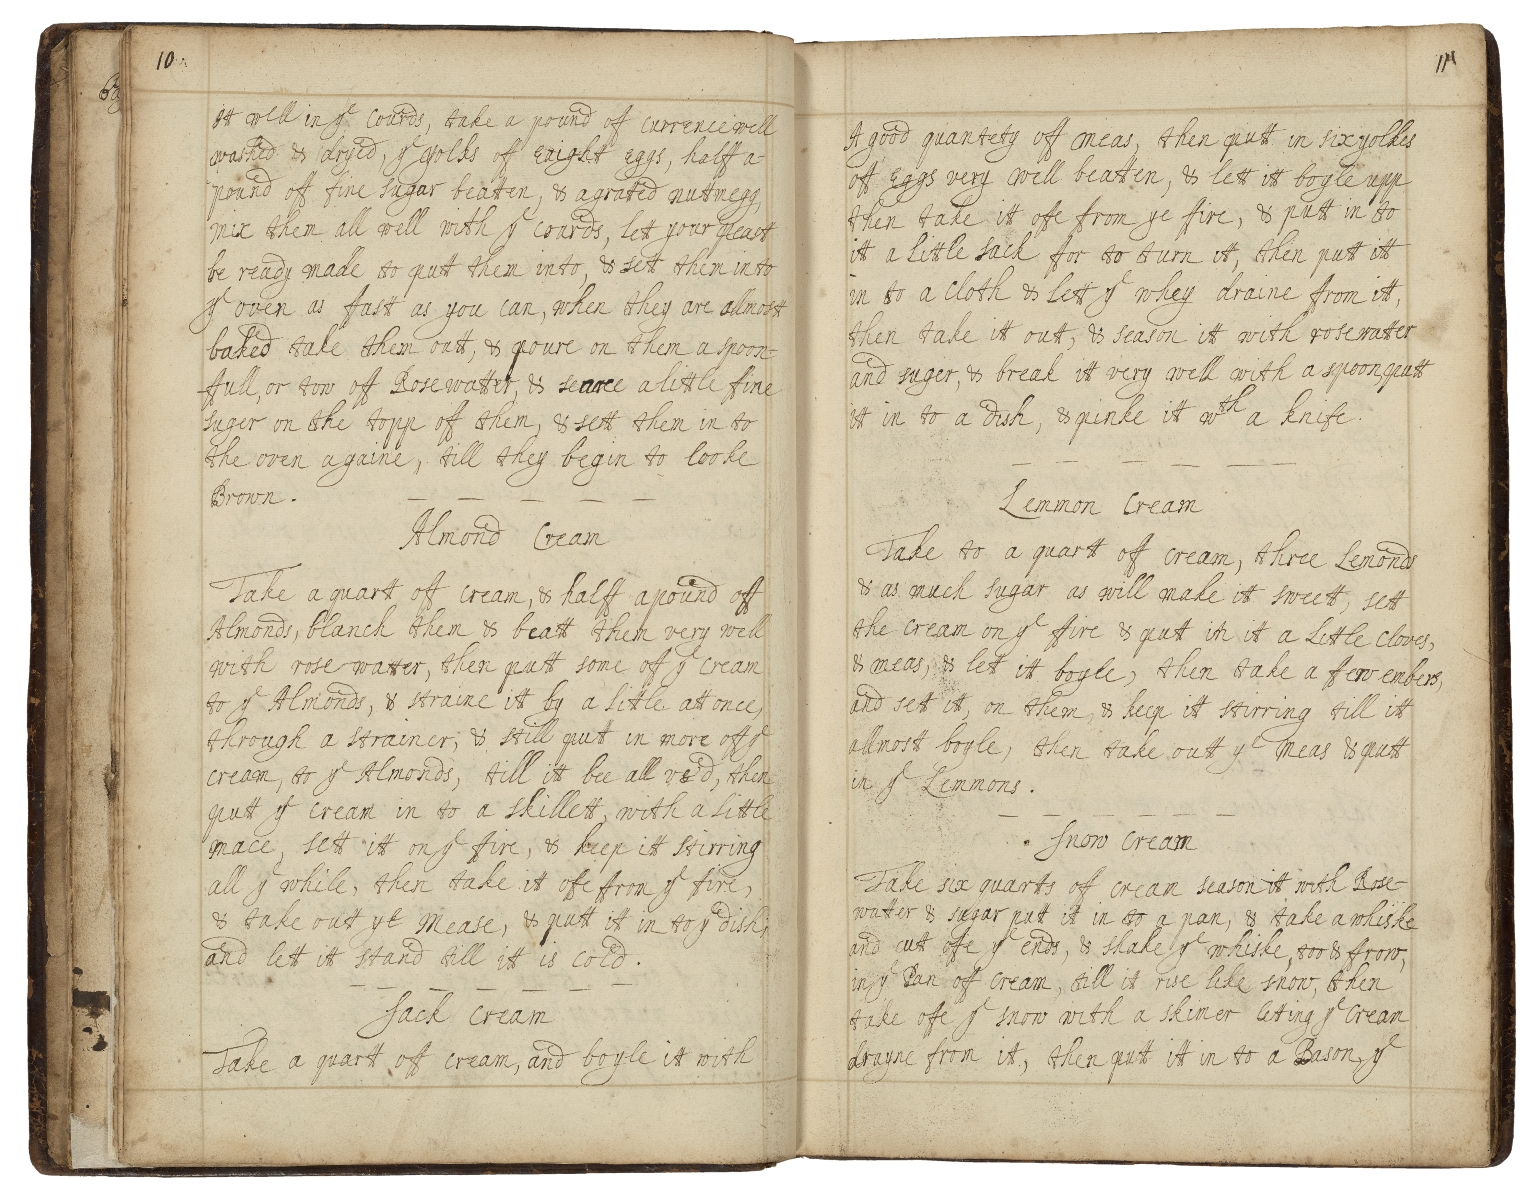 Receipt book of Mary Hookes [manuscript].